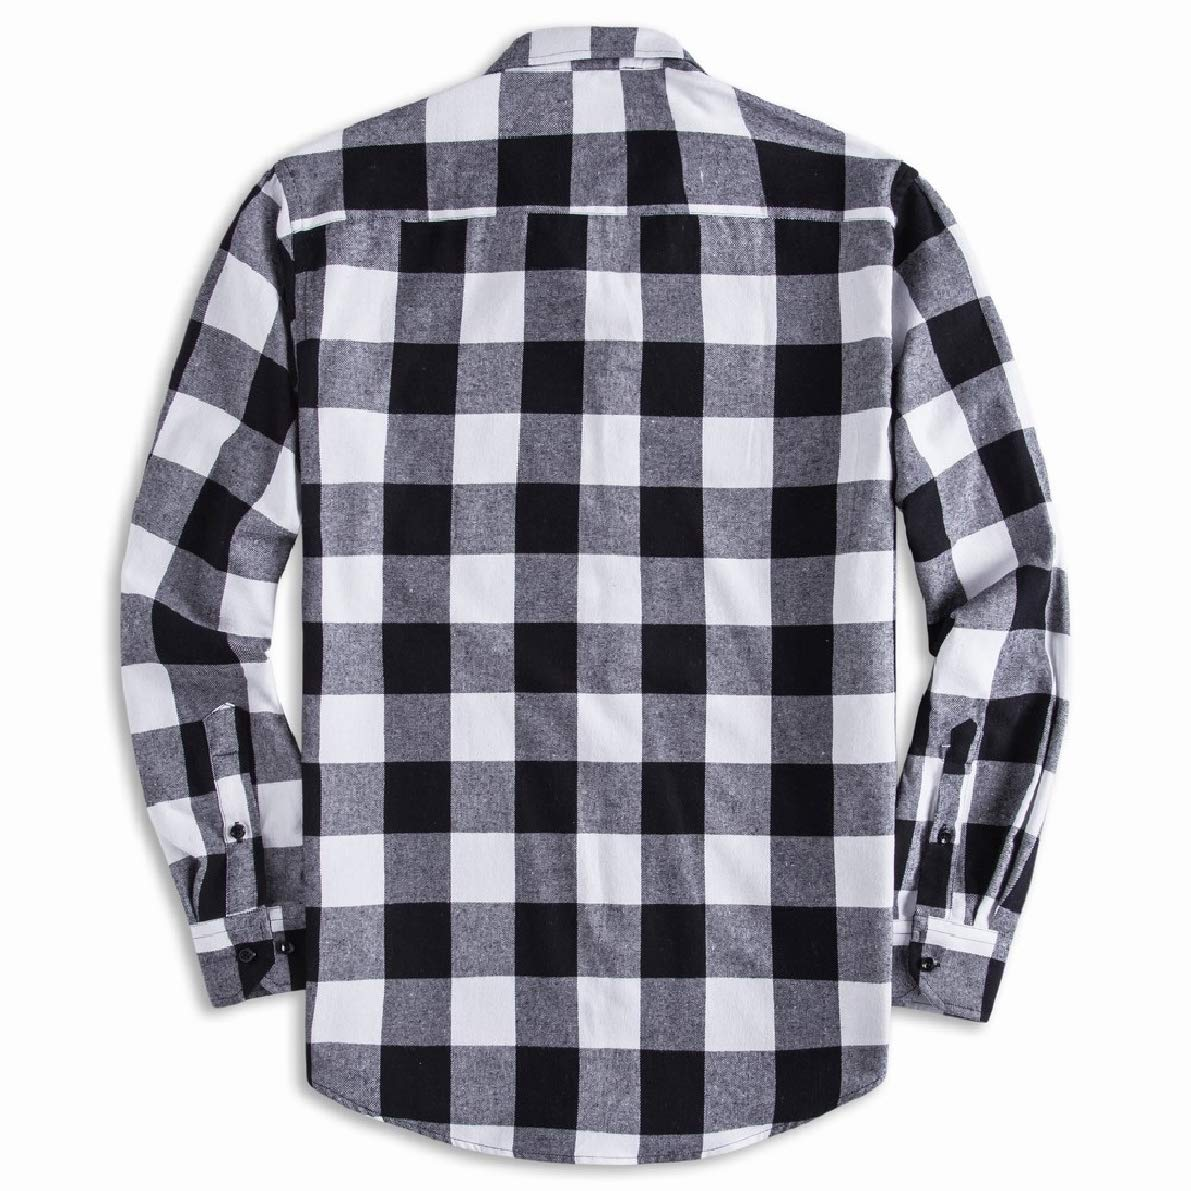 Winwinus Mens Plaid Relaxed-Fit Square Collar Long-Sleeve Loose Dress Shirts